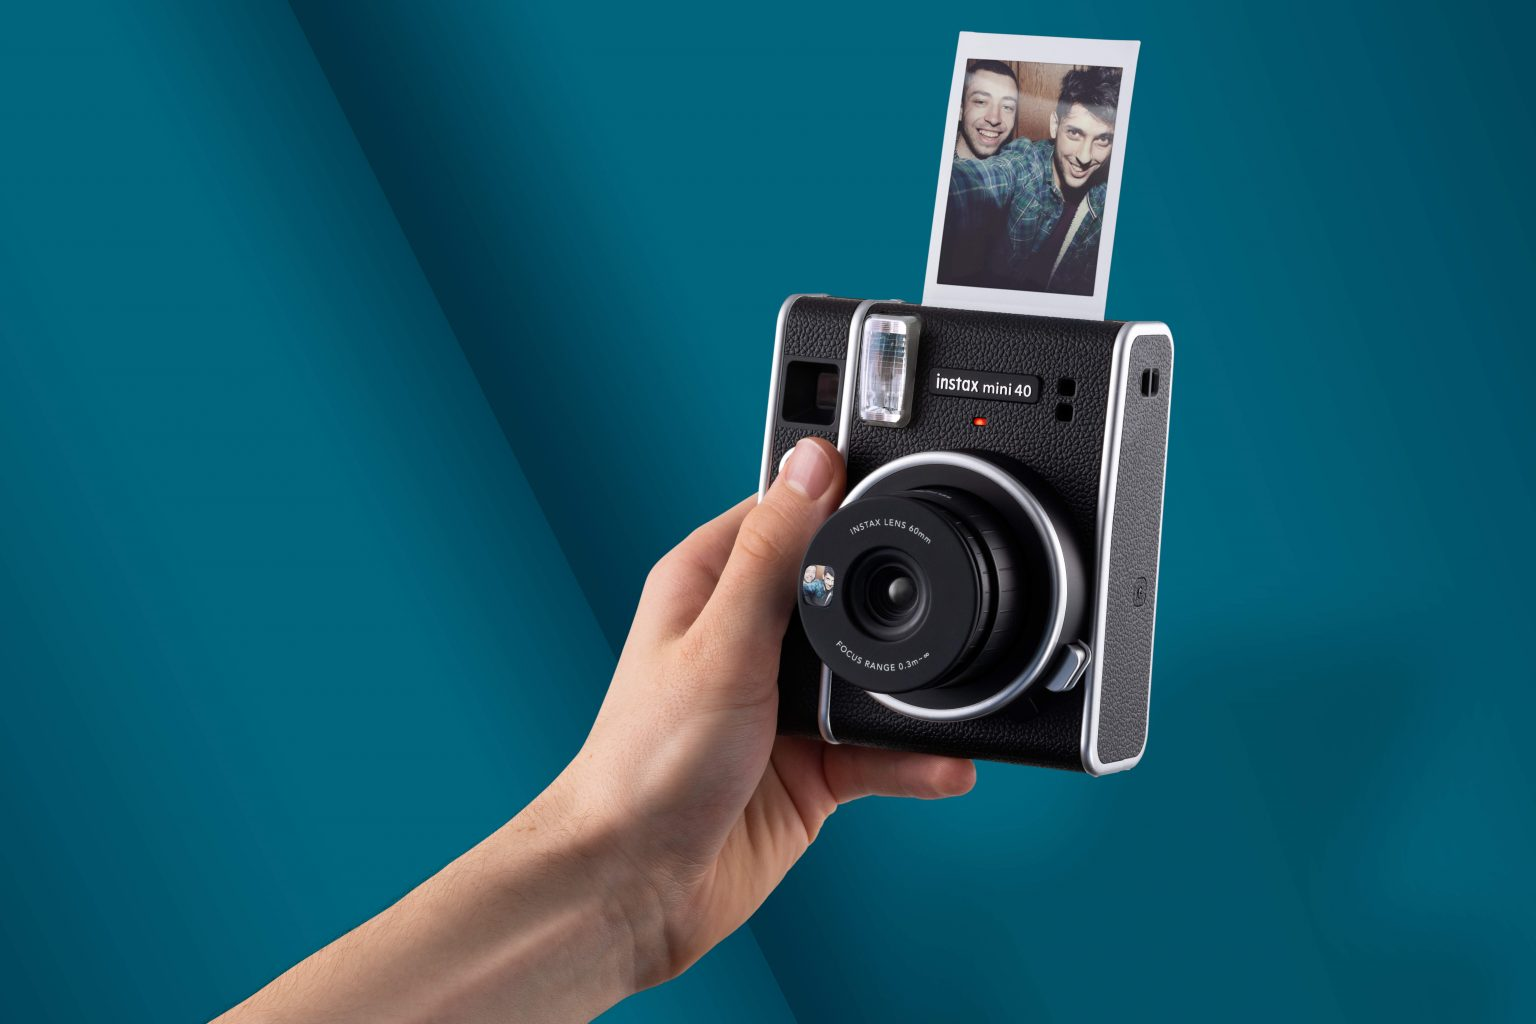 Win the brand new Instax Mini 40